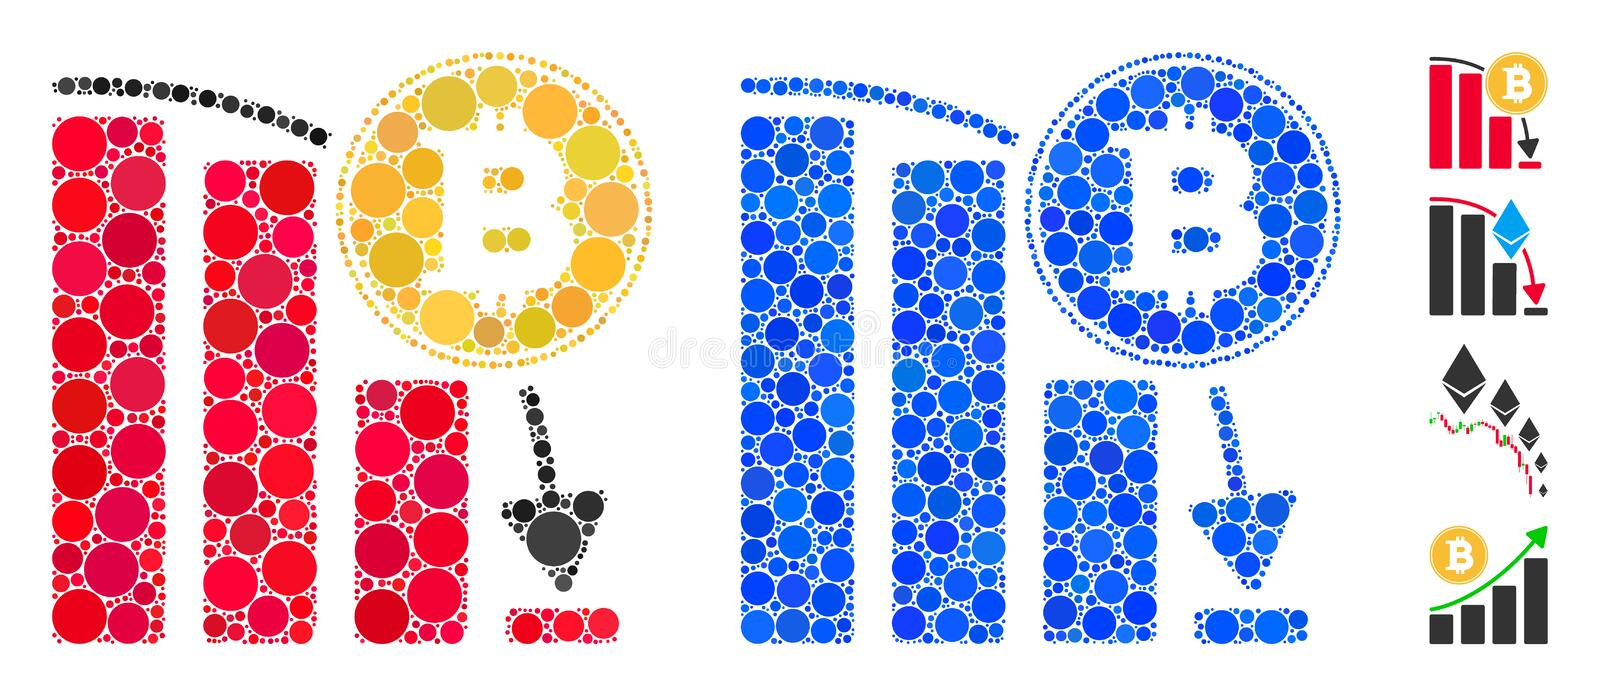 Bitcoin Falling Chart Composition Icon of Round Dots royalty free illustration